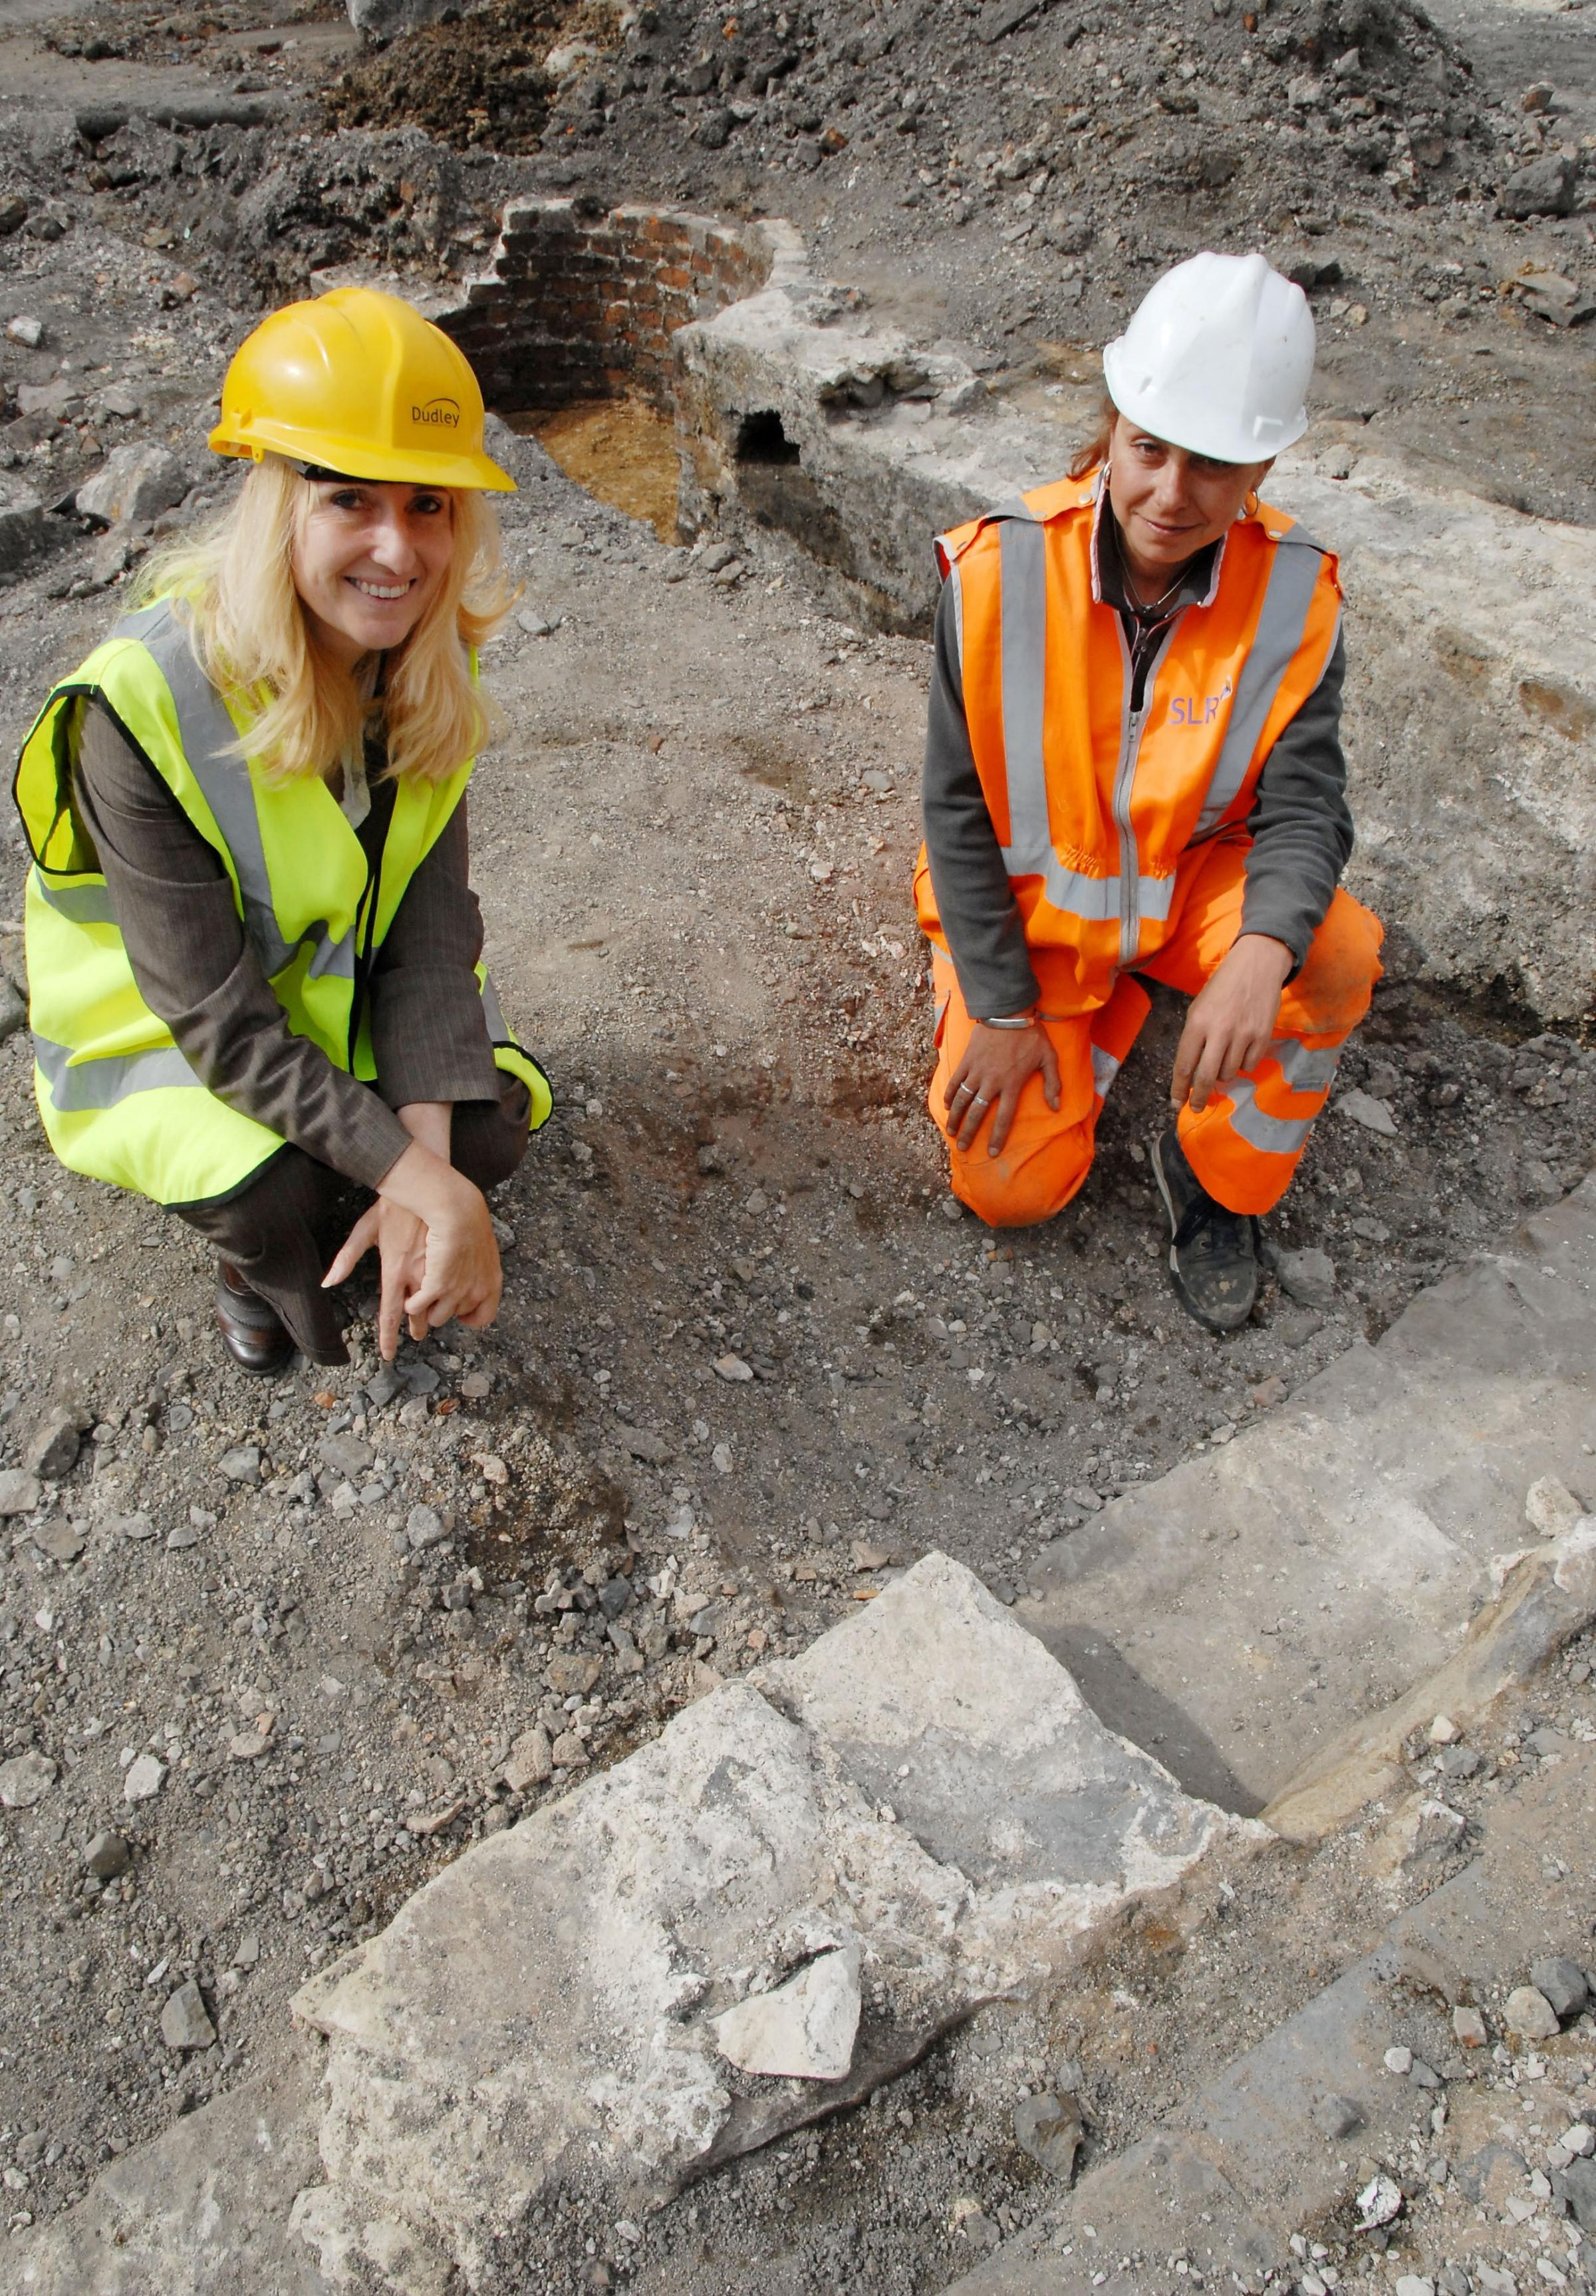 l-r Cllr Judy Foster with Kate Griffiths, SLR consulting archaeologist, at the site Dudley town centre market place. 261481M